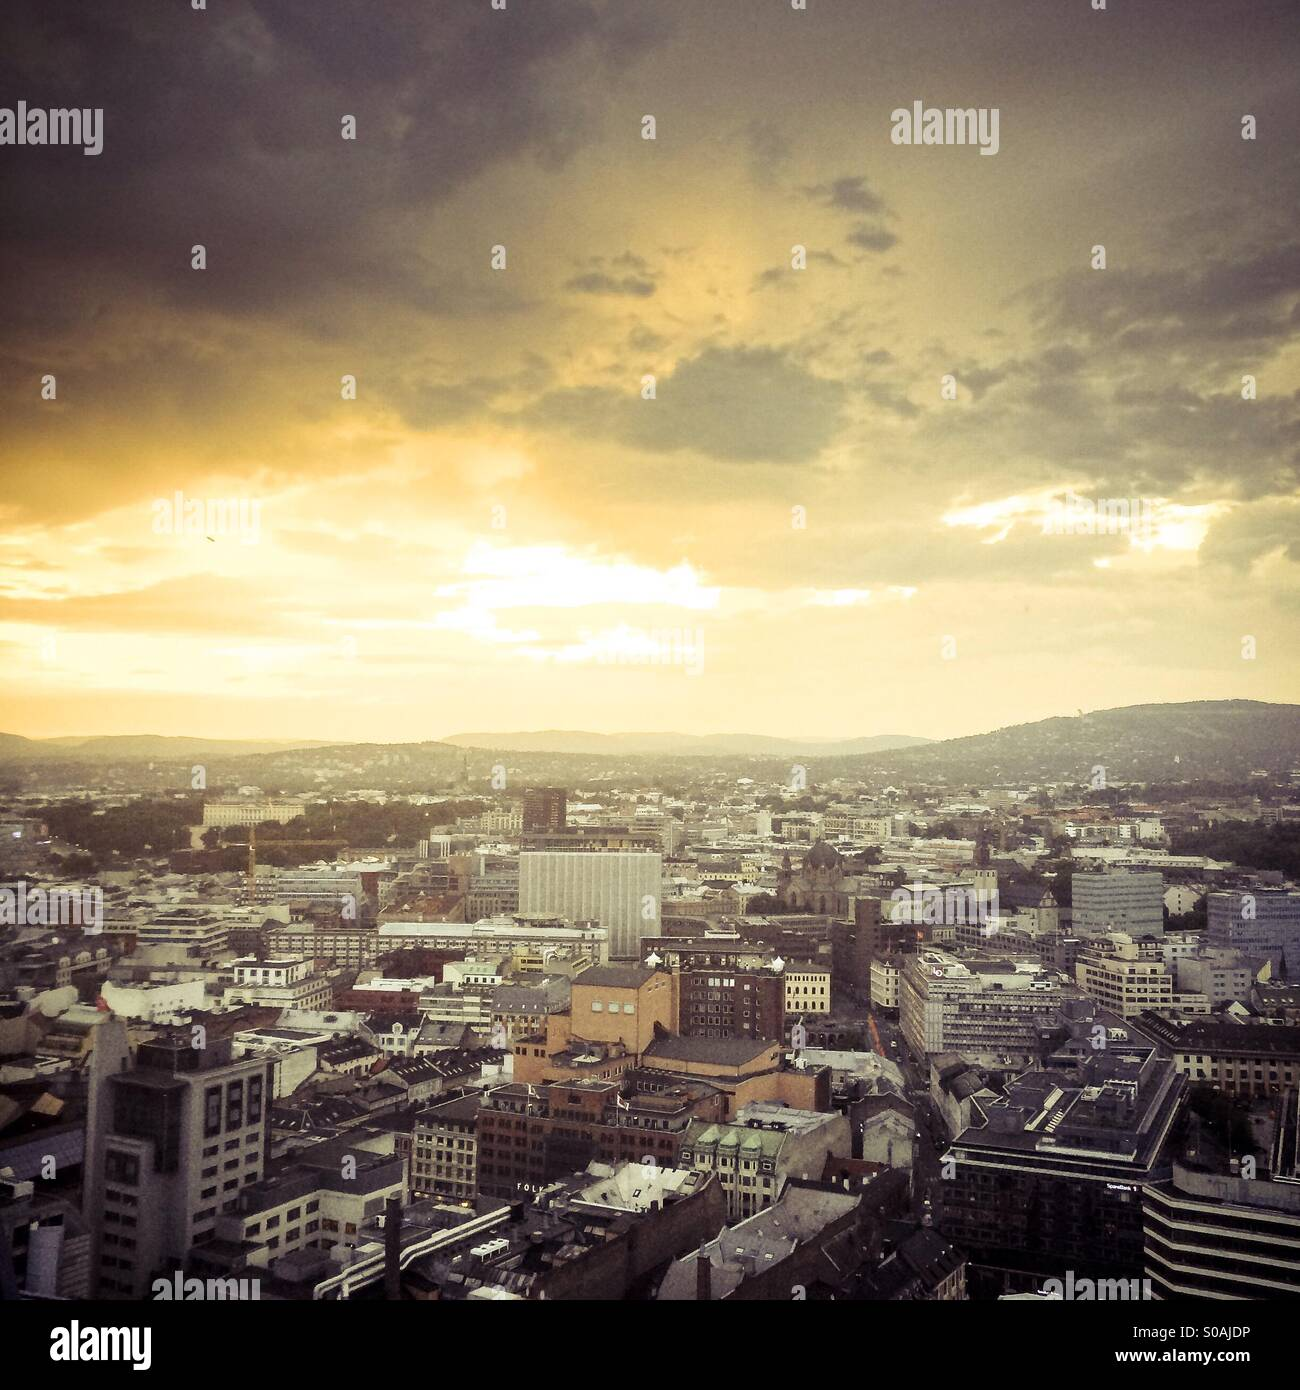 Aerial view of Oslo city skyline, Norway, at sunset - Stock Image